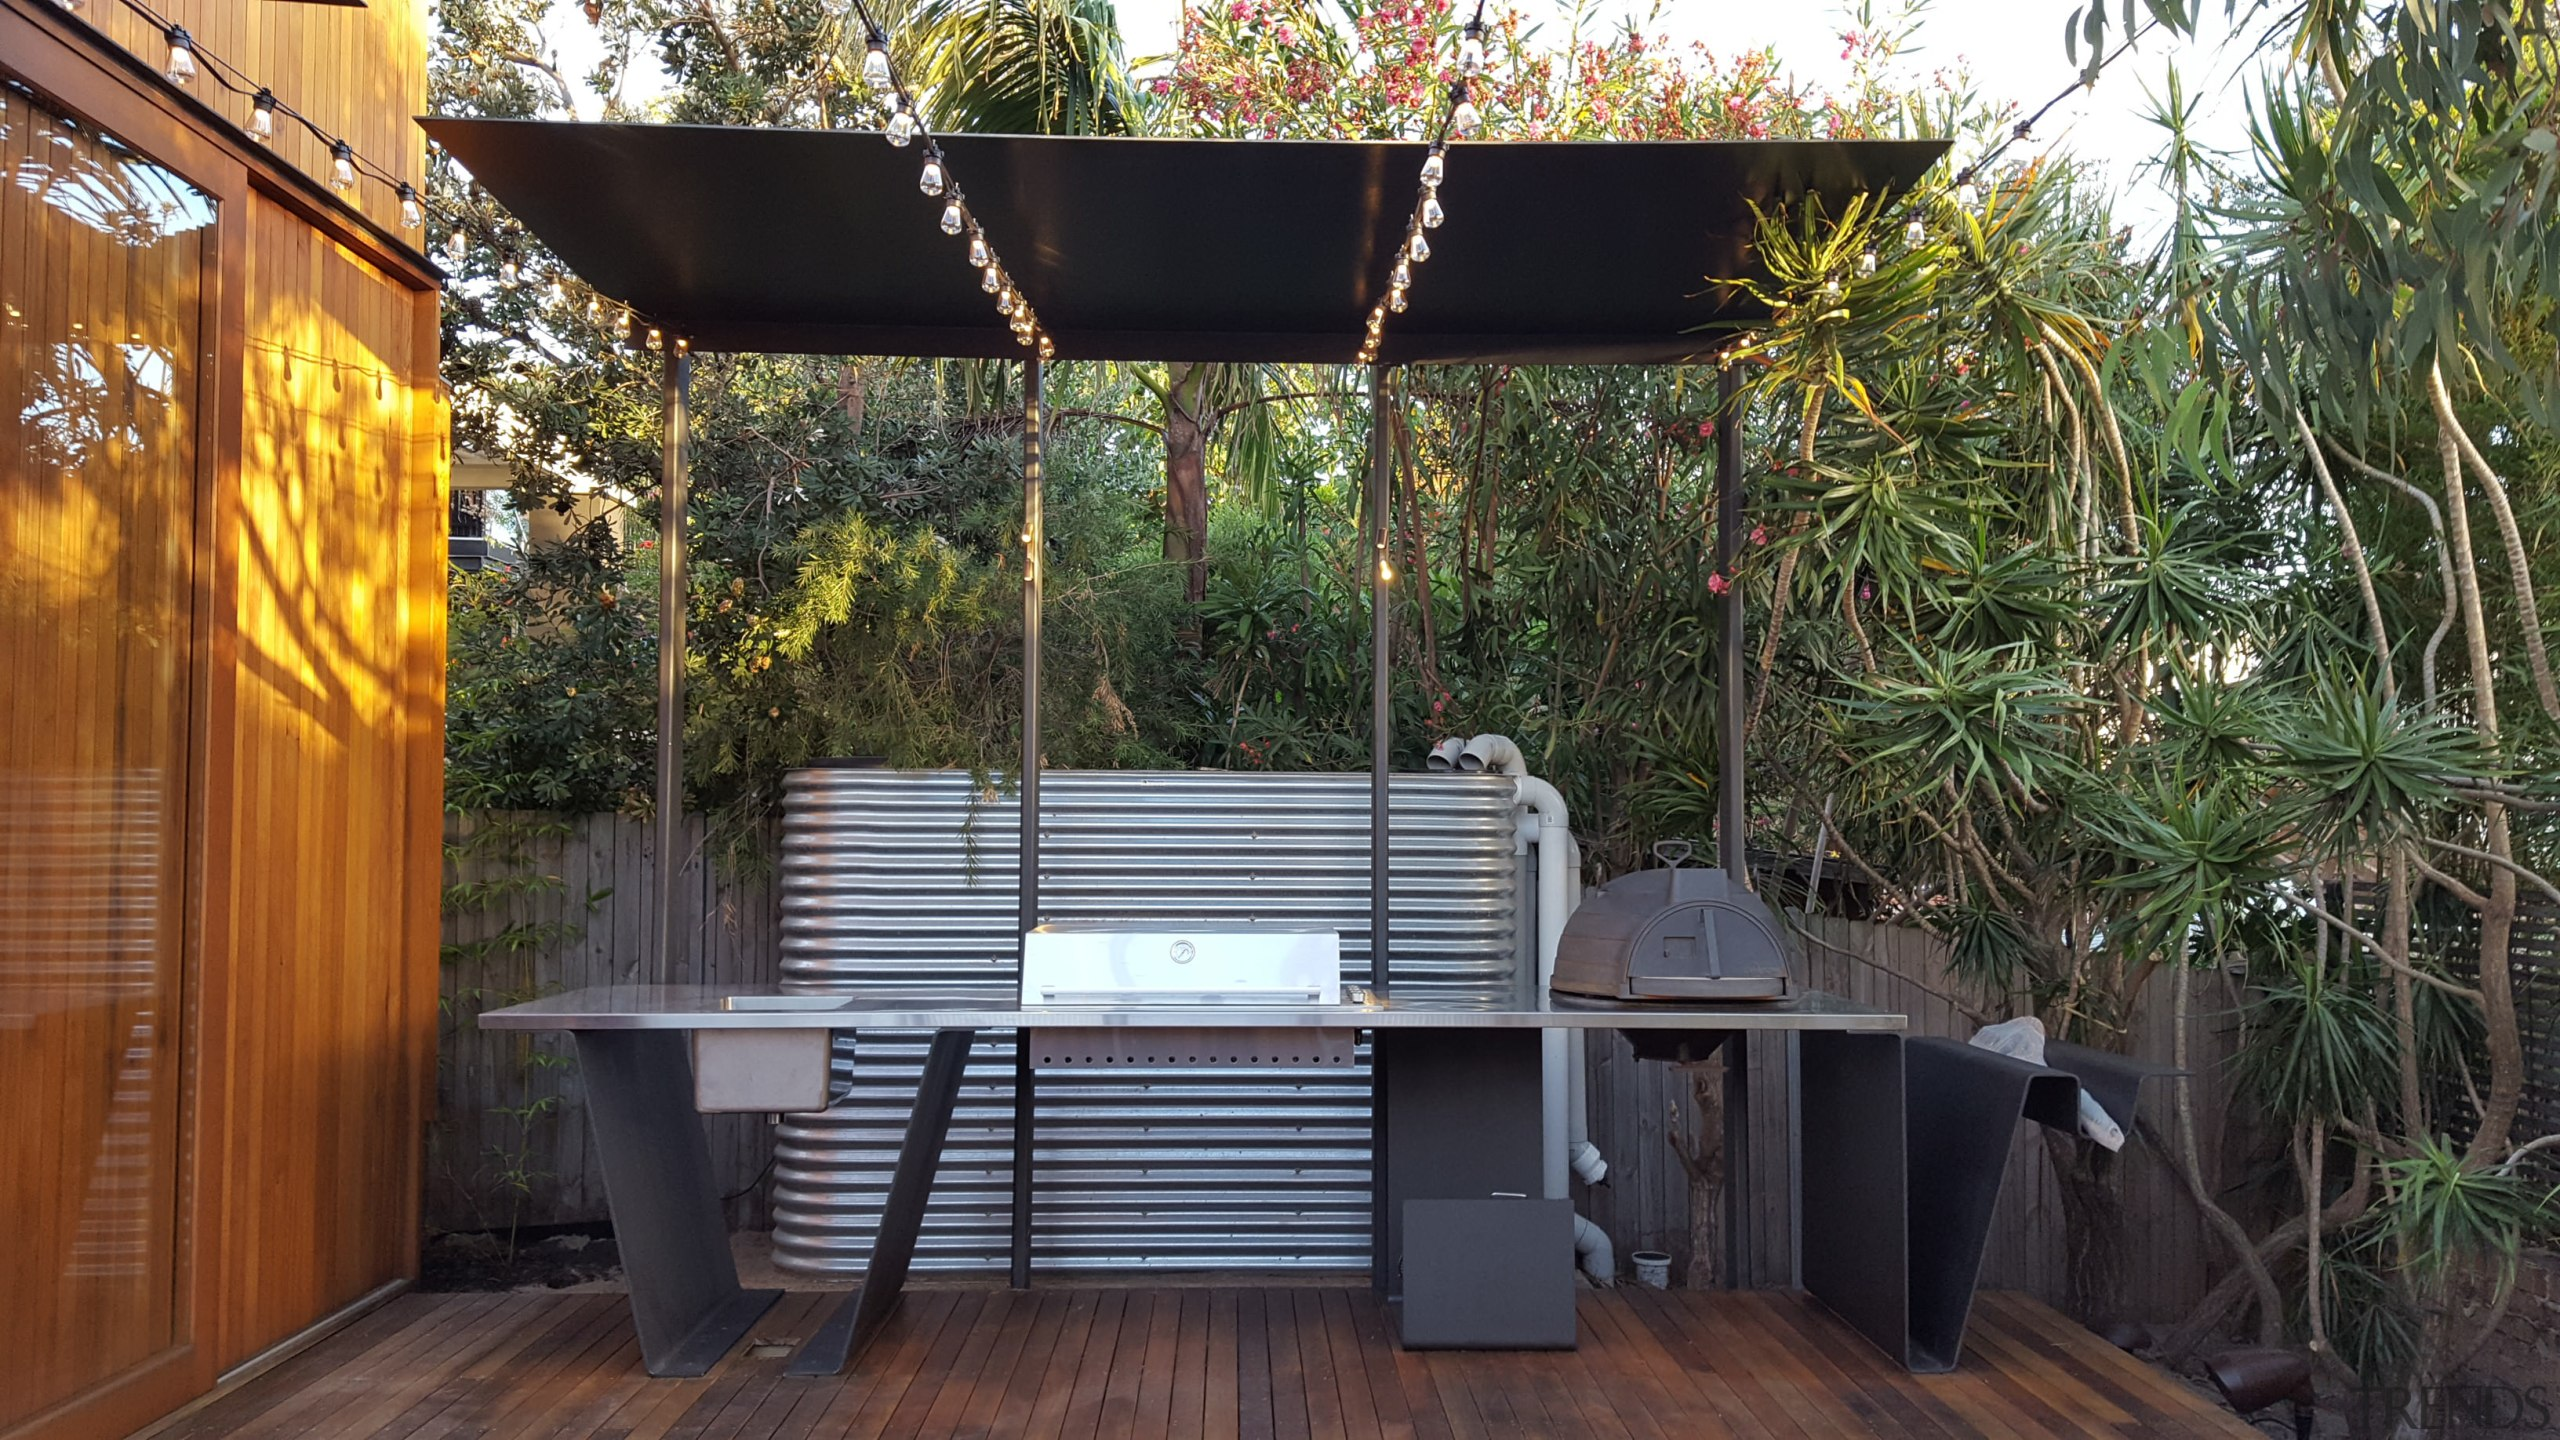 This custom-designed  outdoor cooking station includes a backyard, house, outdoor structure, patio, real estate, black